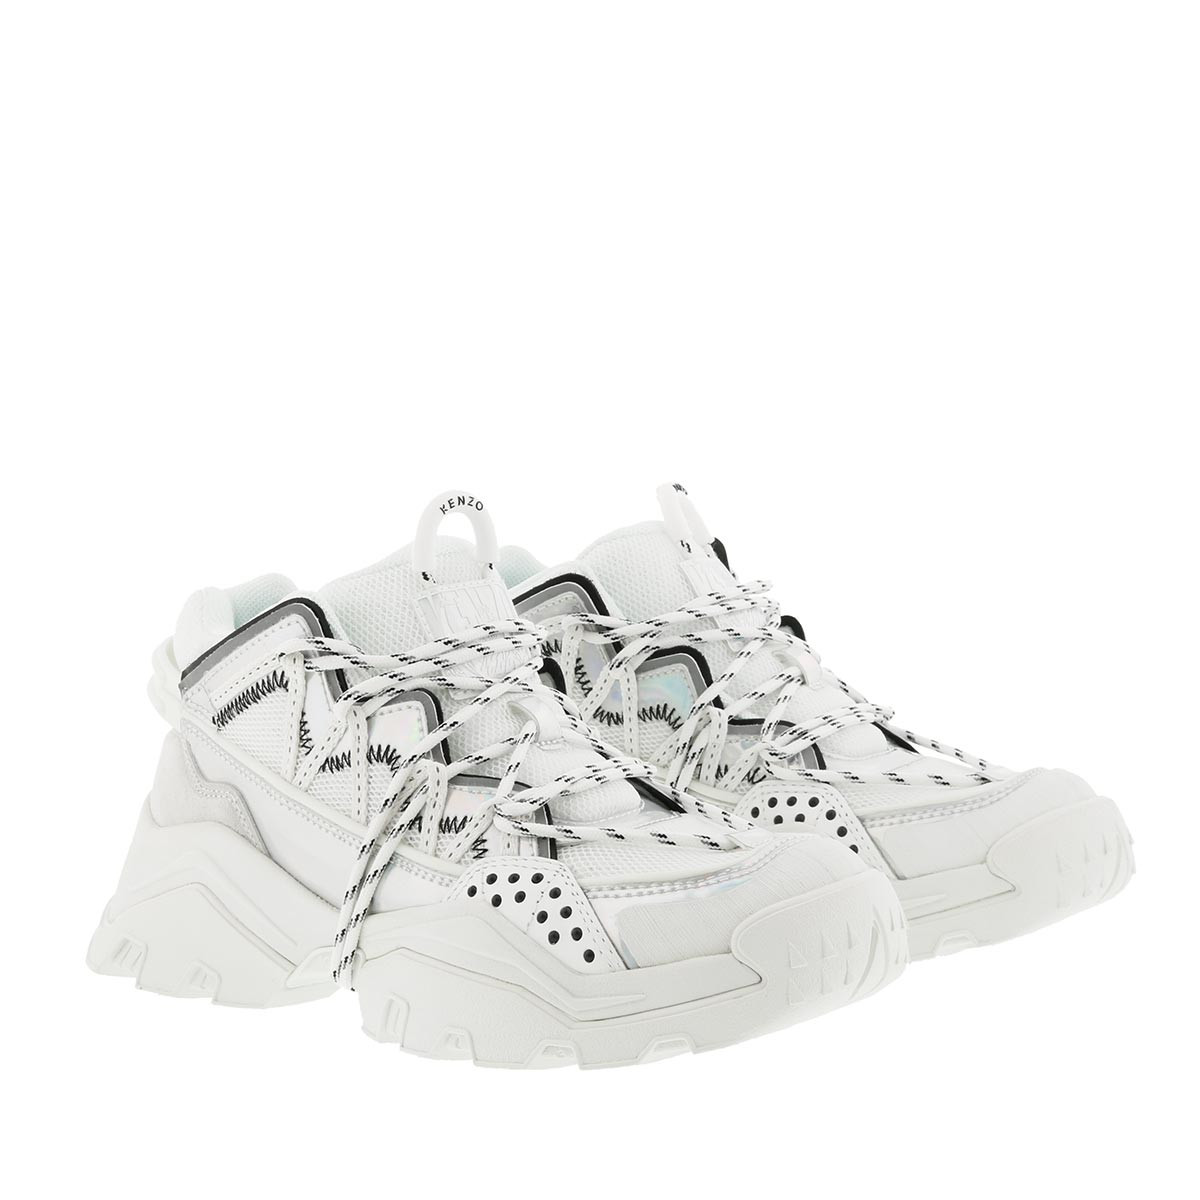 Kenzo Sneakers - Low Top Sneaker White - in weiß - für Damen